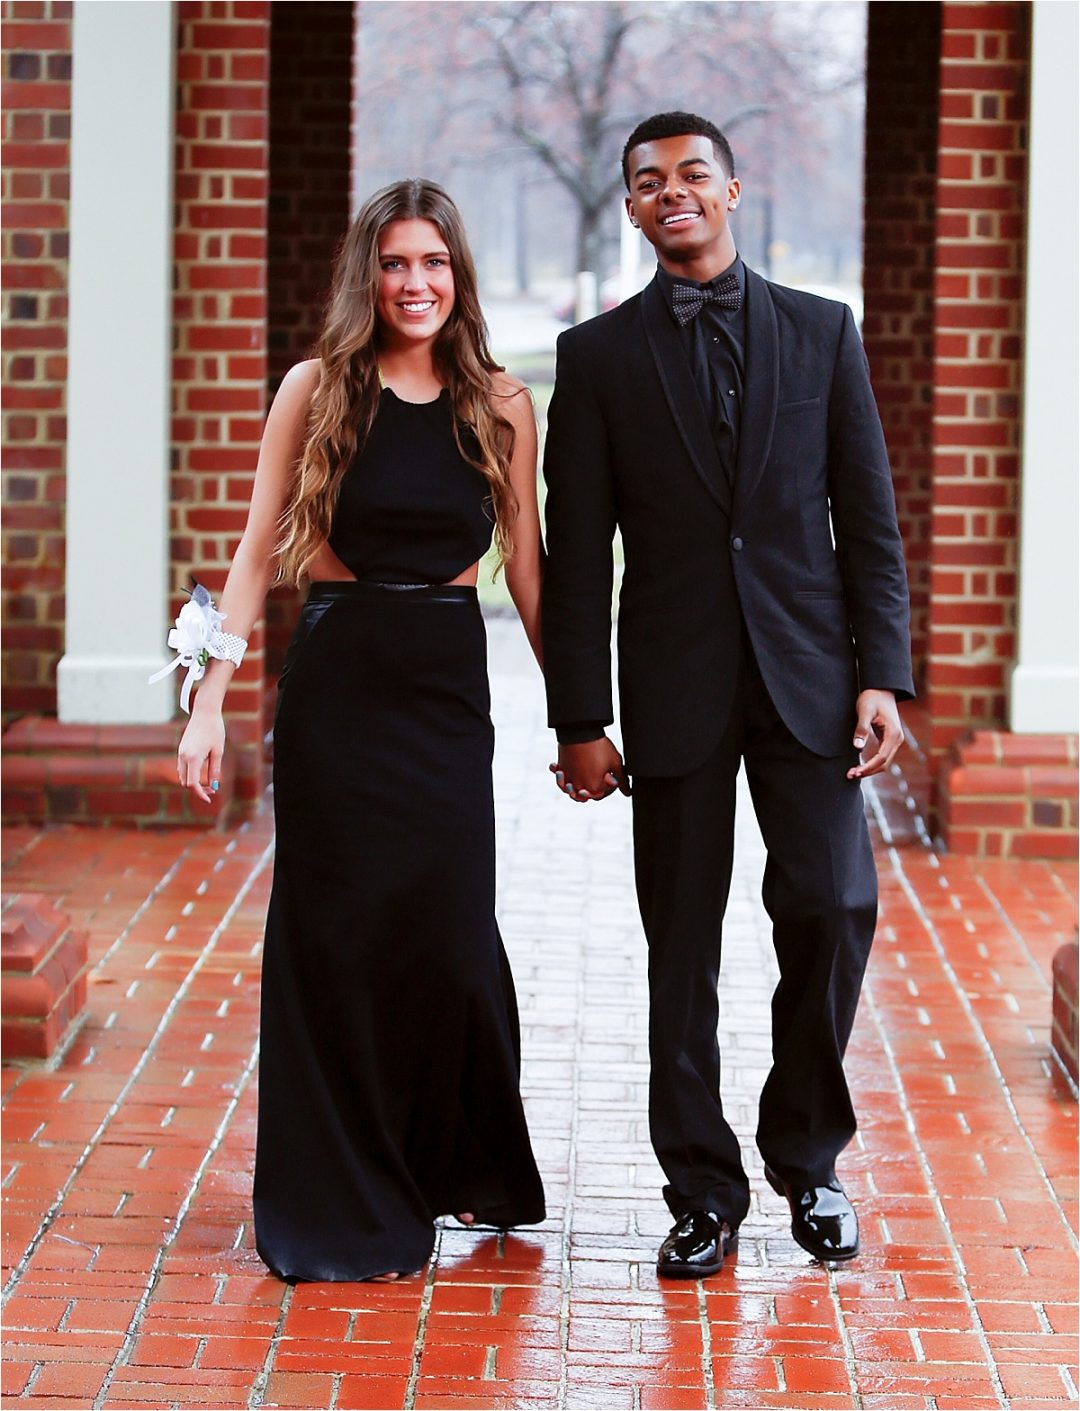 My Son Brandon's Ring Dance Photo Shoot at The Founders Inn & Spa!